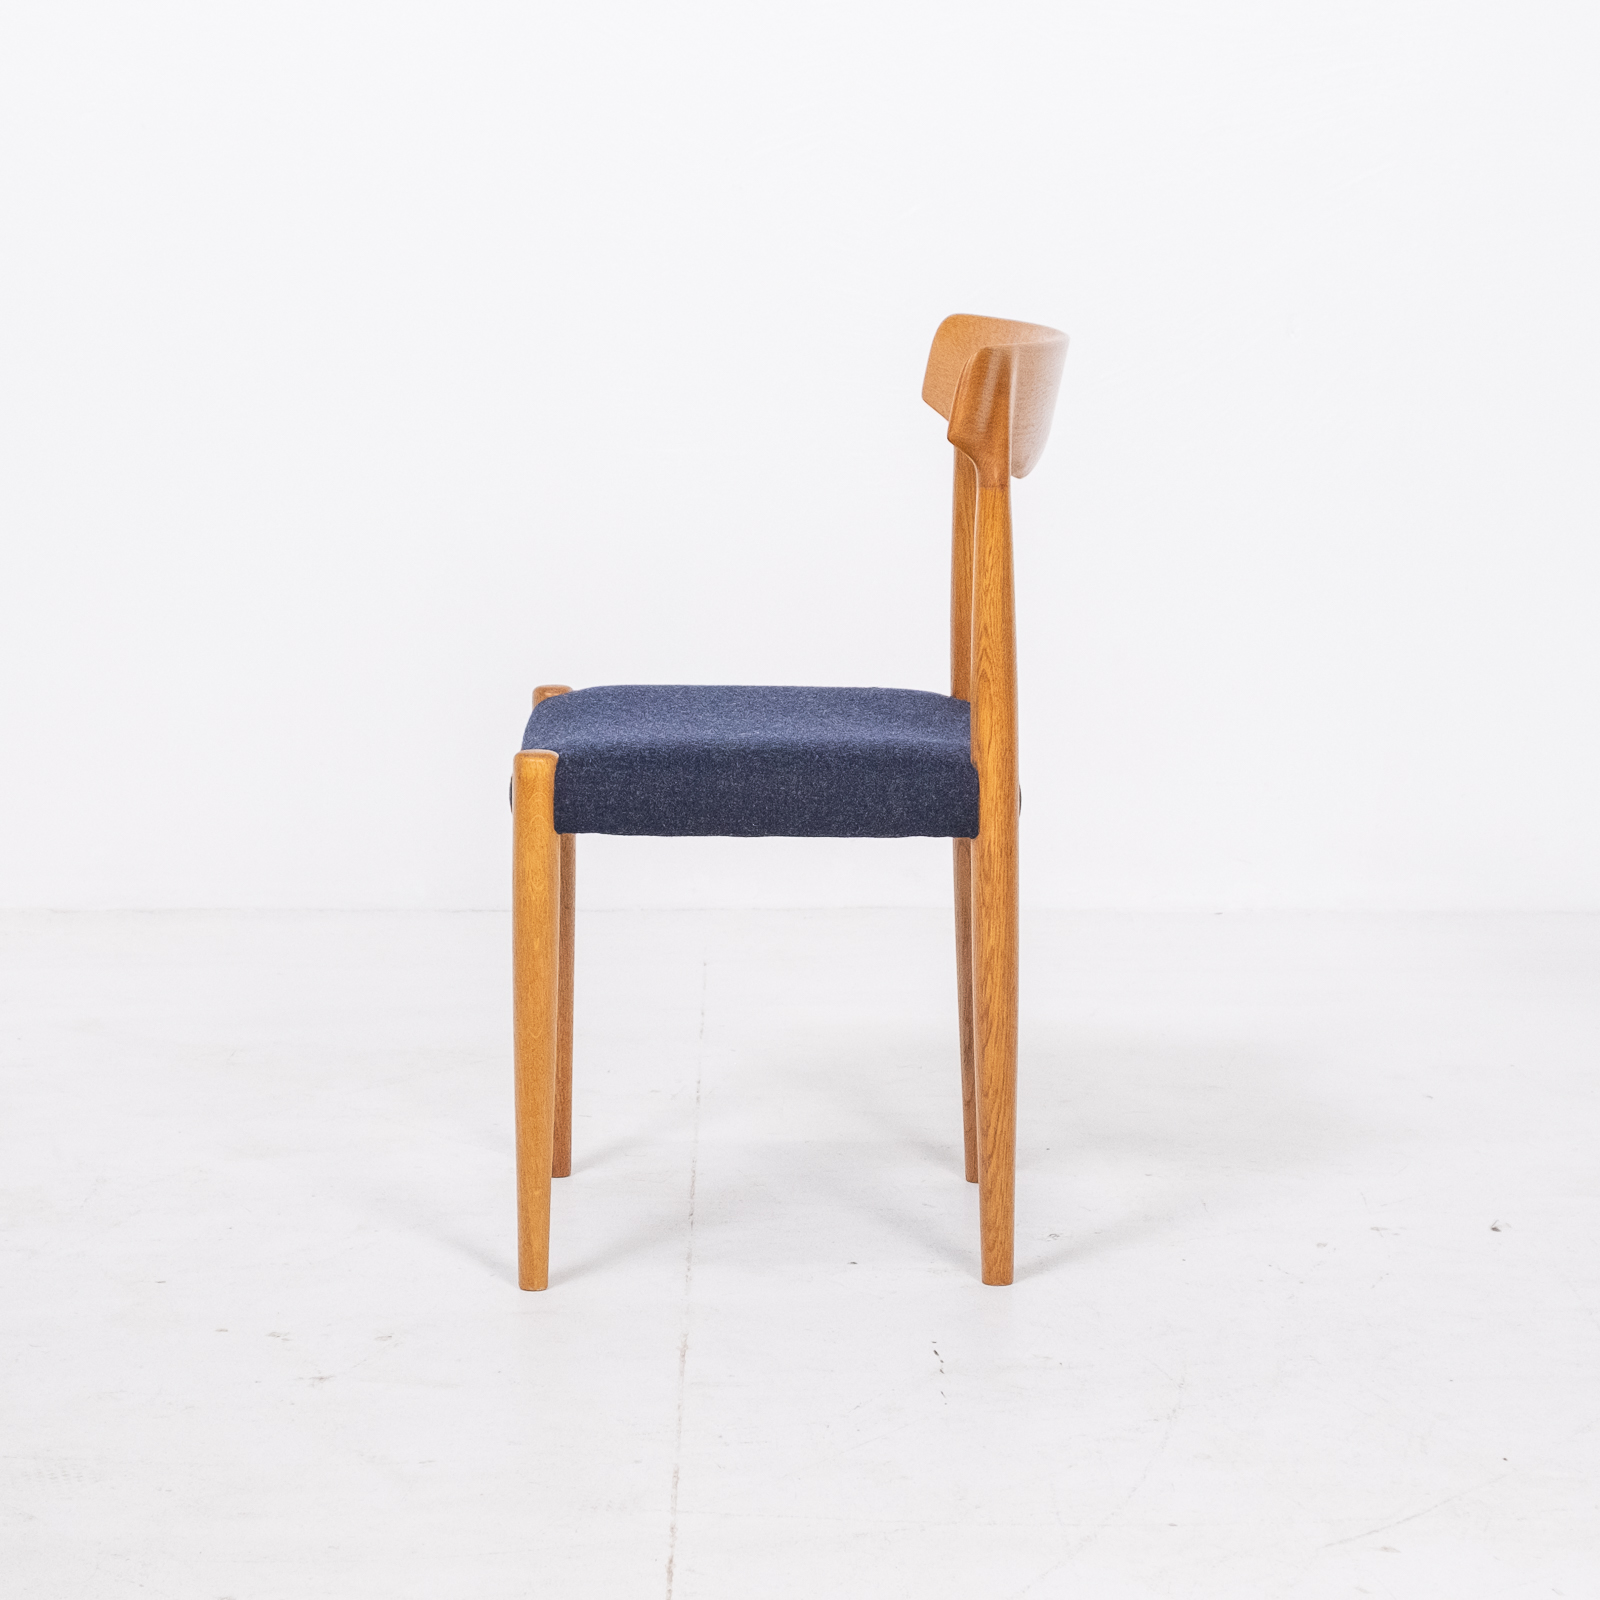 Set Of 6 Dining Chairs By Borge Mogensen For Fdb Mobler In Oak, 1960s, Denmark 00005